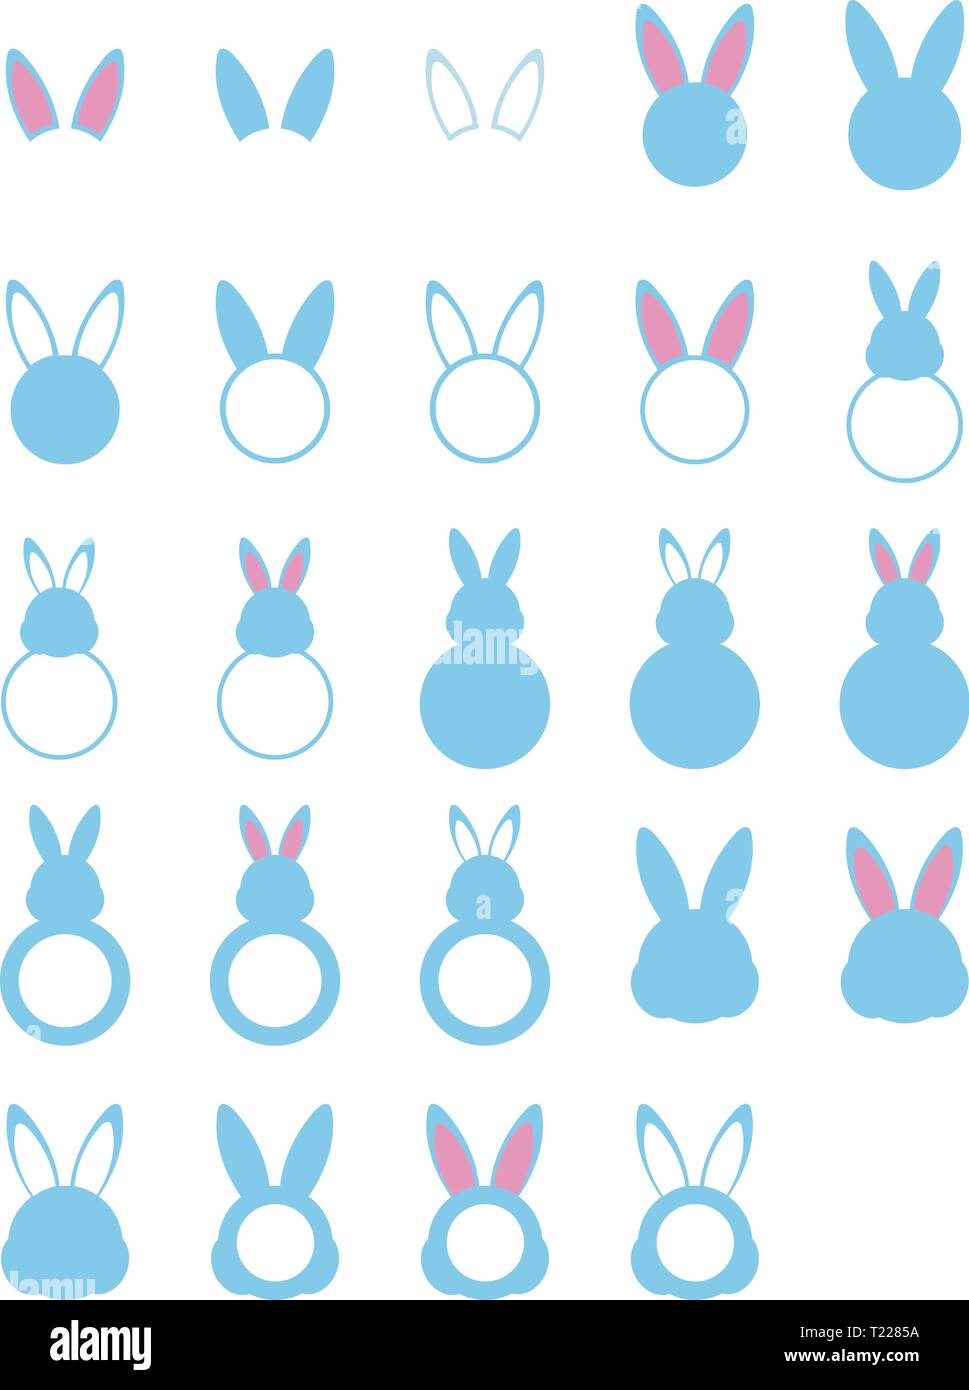 photograph regarding Bunny Silhouette Printable named Preset of 20 4 bunny silhouettes with monograms for